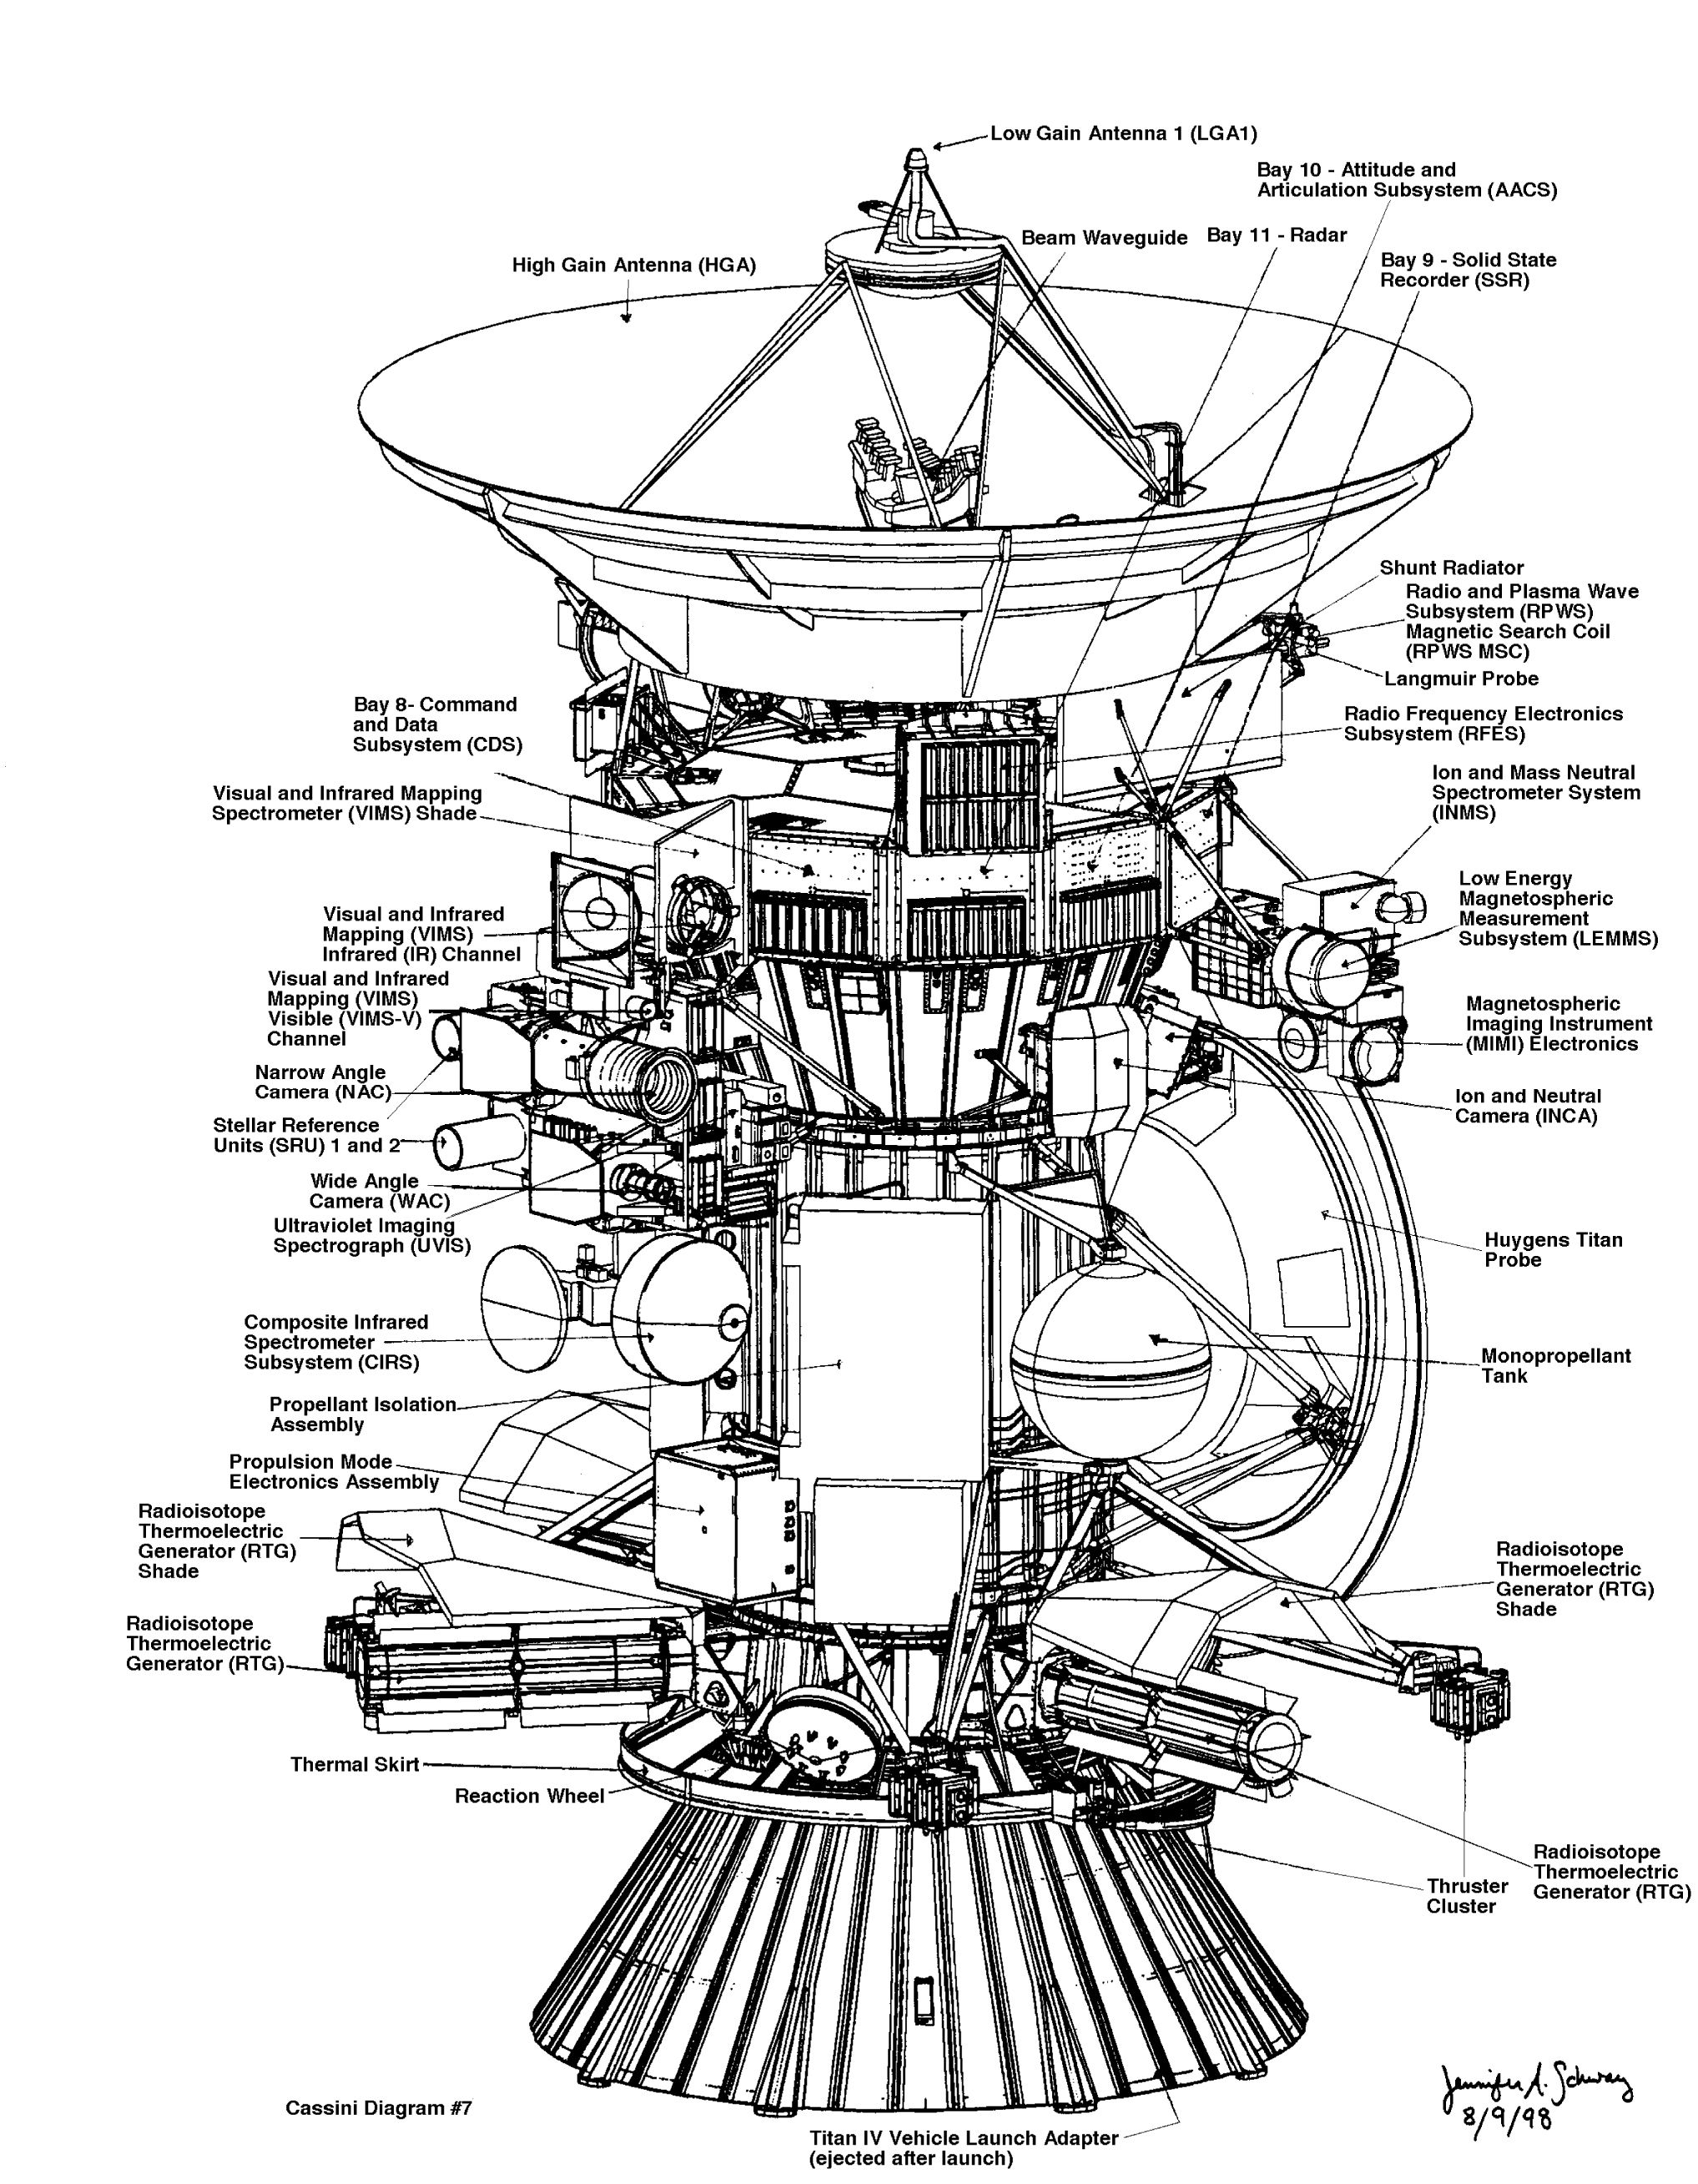 Cassini Schematic